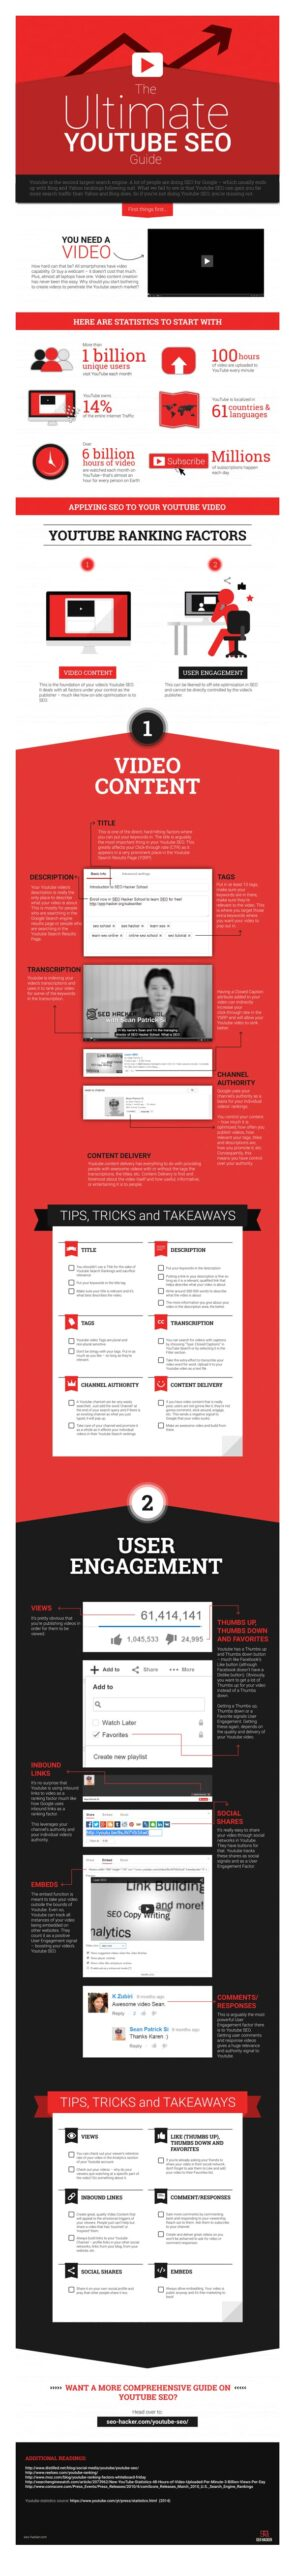 Youtube-SEO-guide-infographic